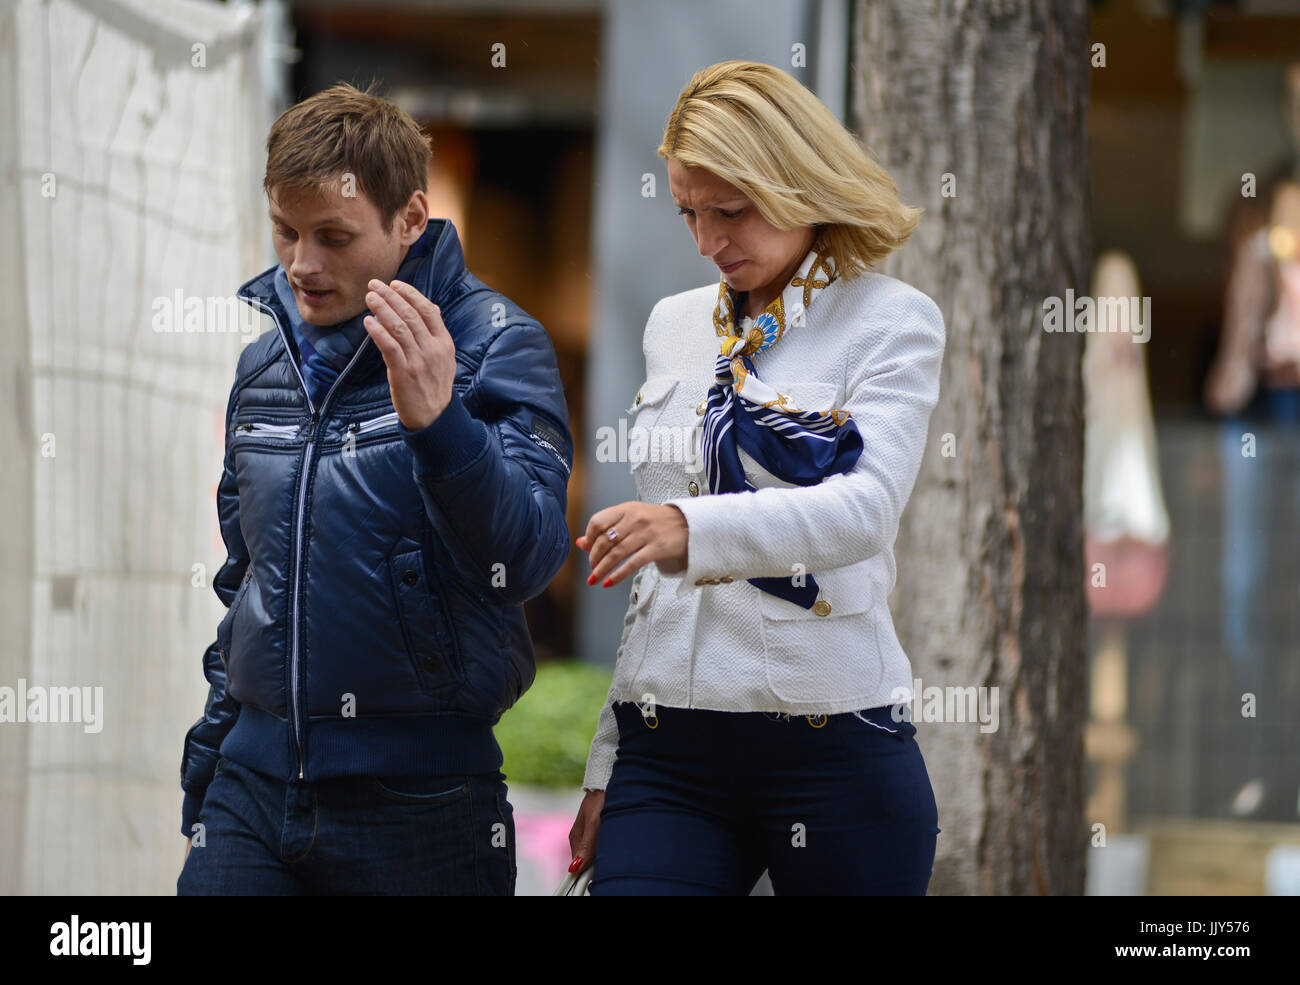 A couple arguing in the street - Stock Image